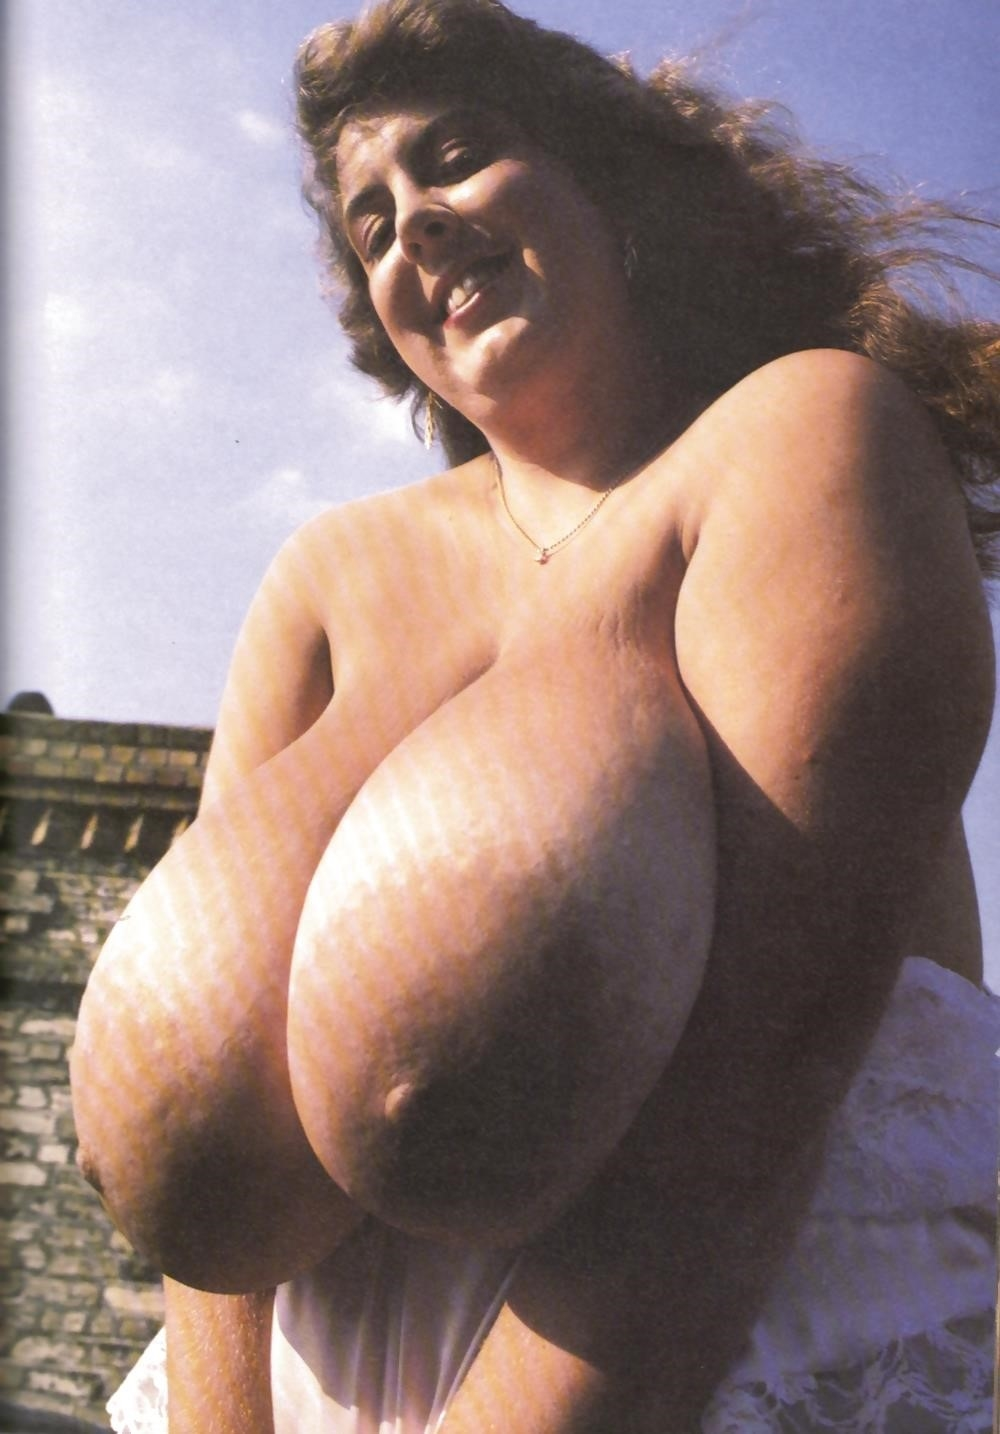 Biggest tits in the world pics-2025